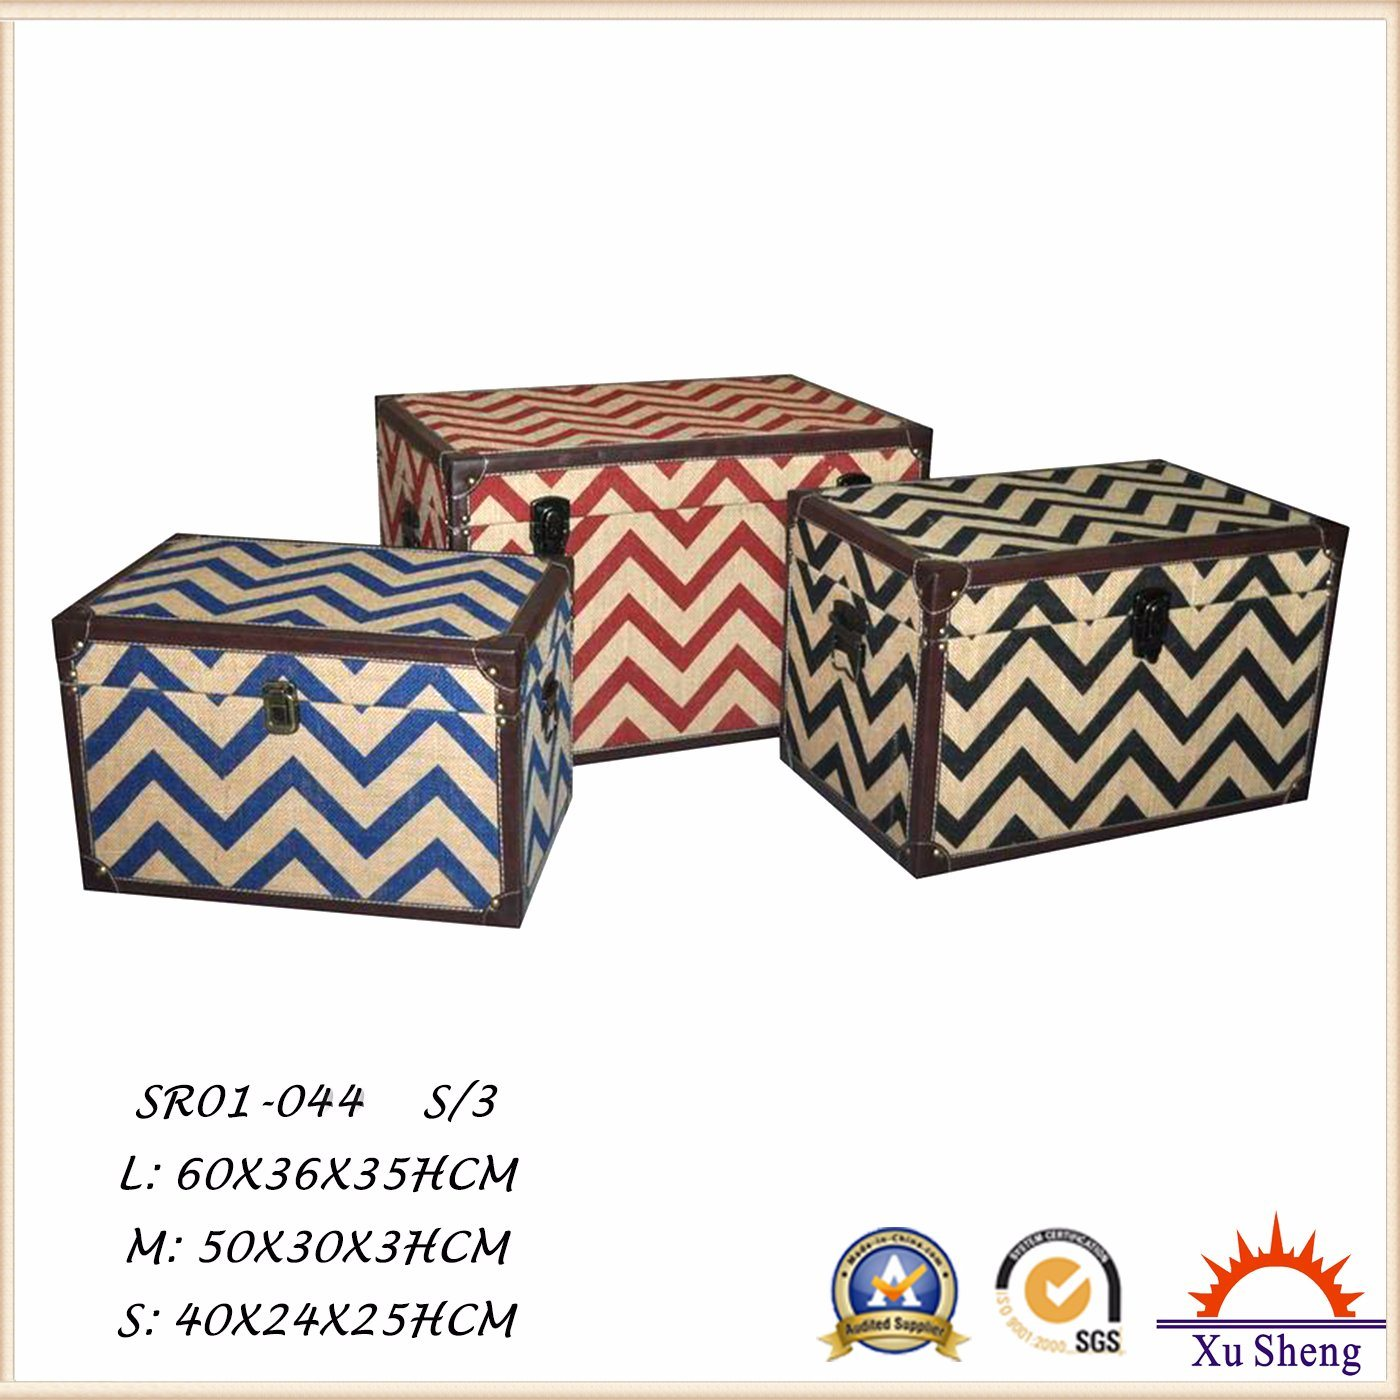 Wooden Chevron Fabric Print Tufted Storage Trunk Chest, Storage Box for Living Room